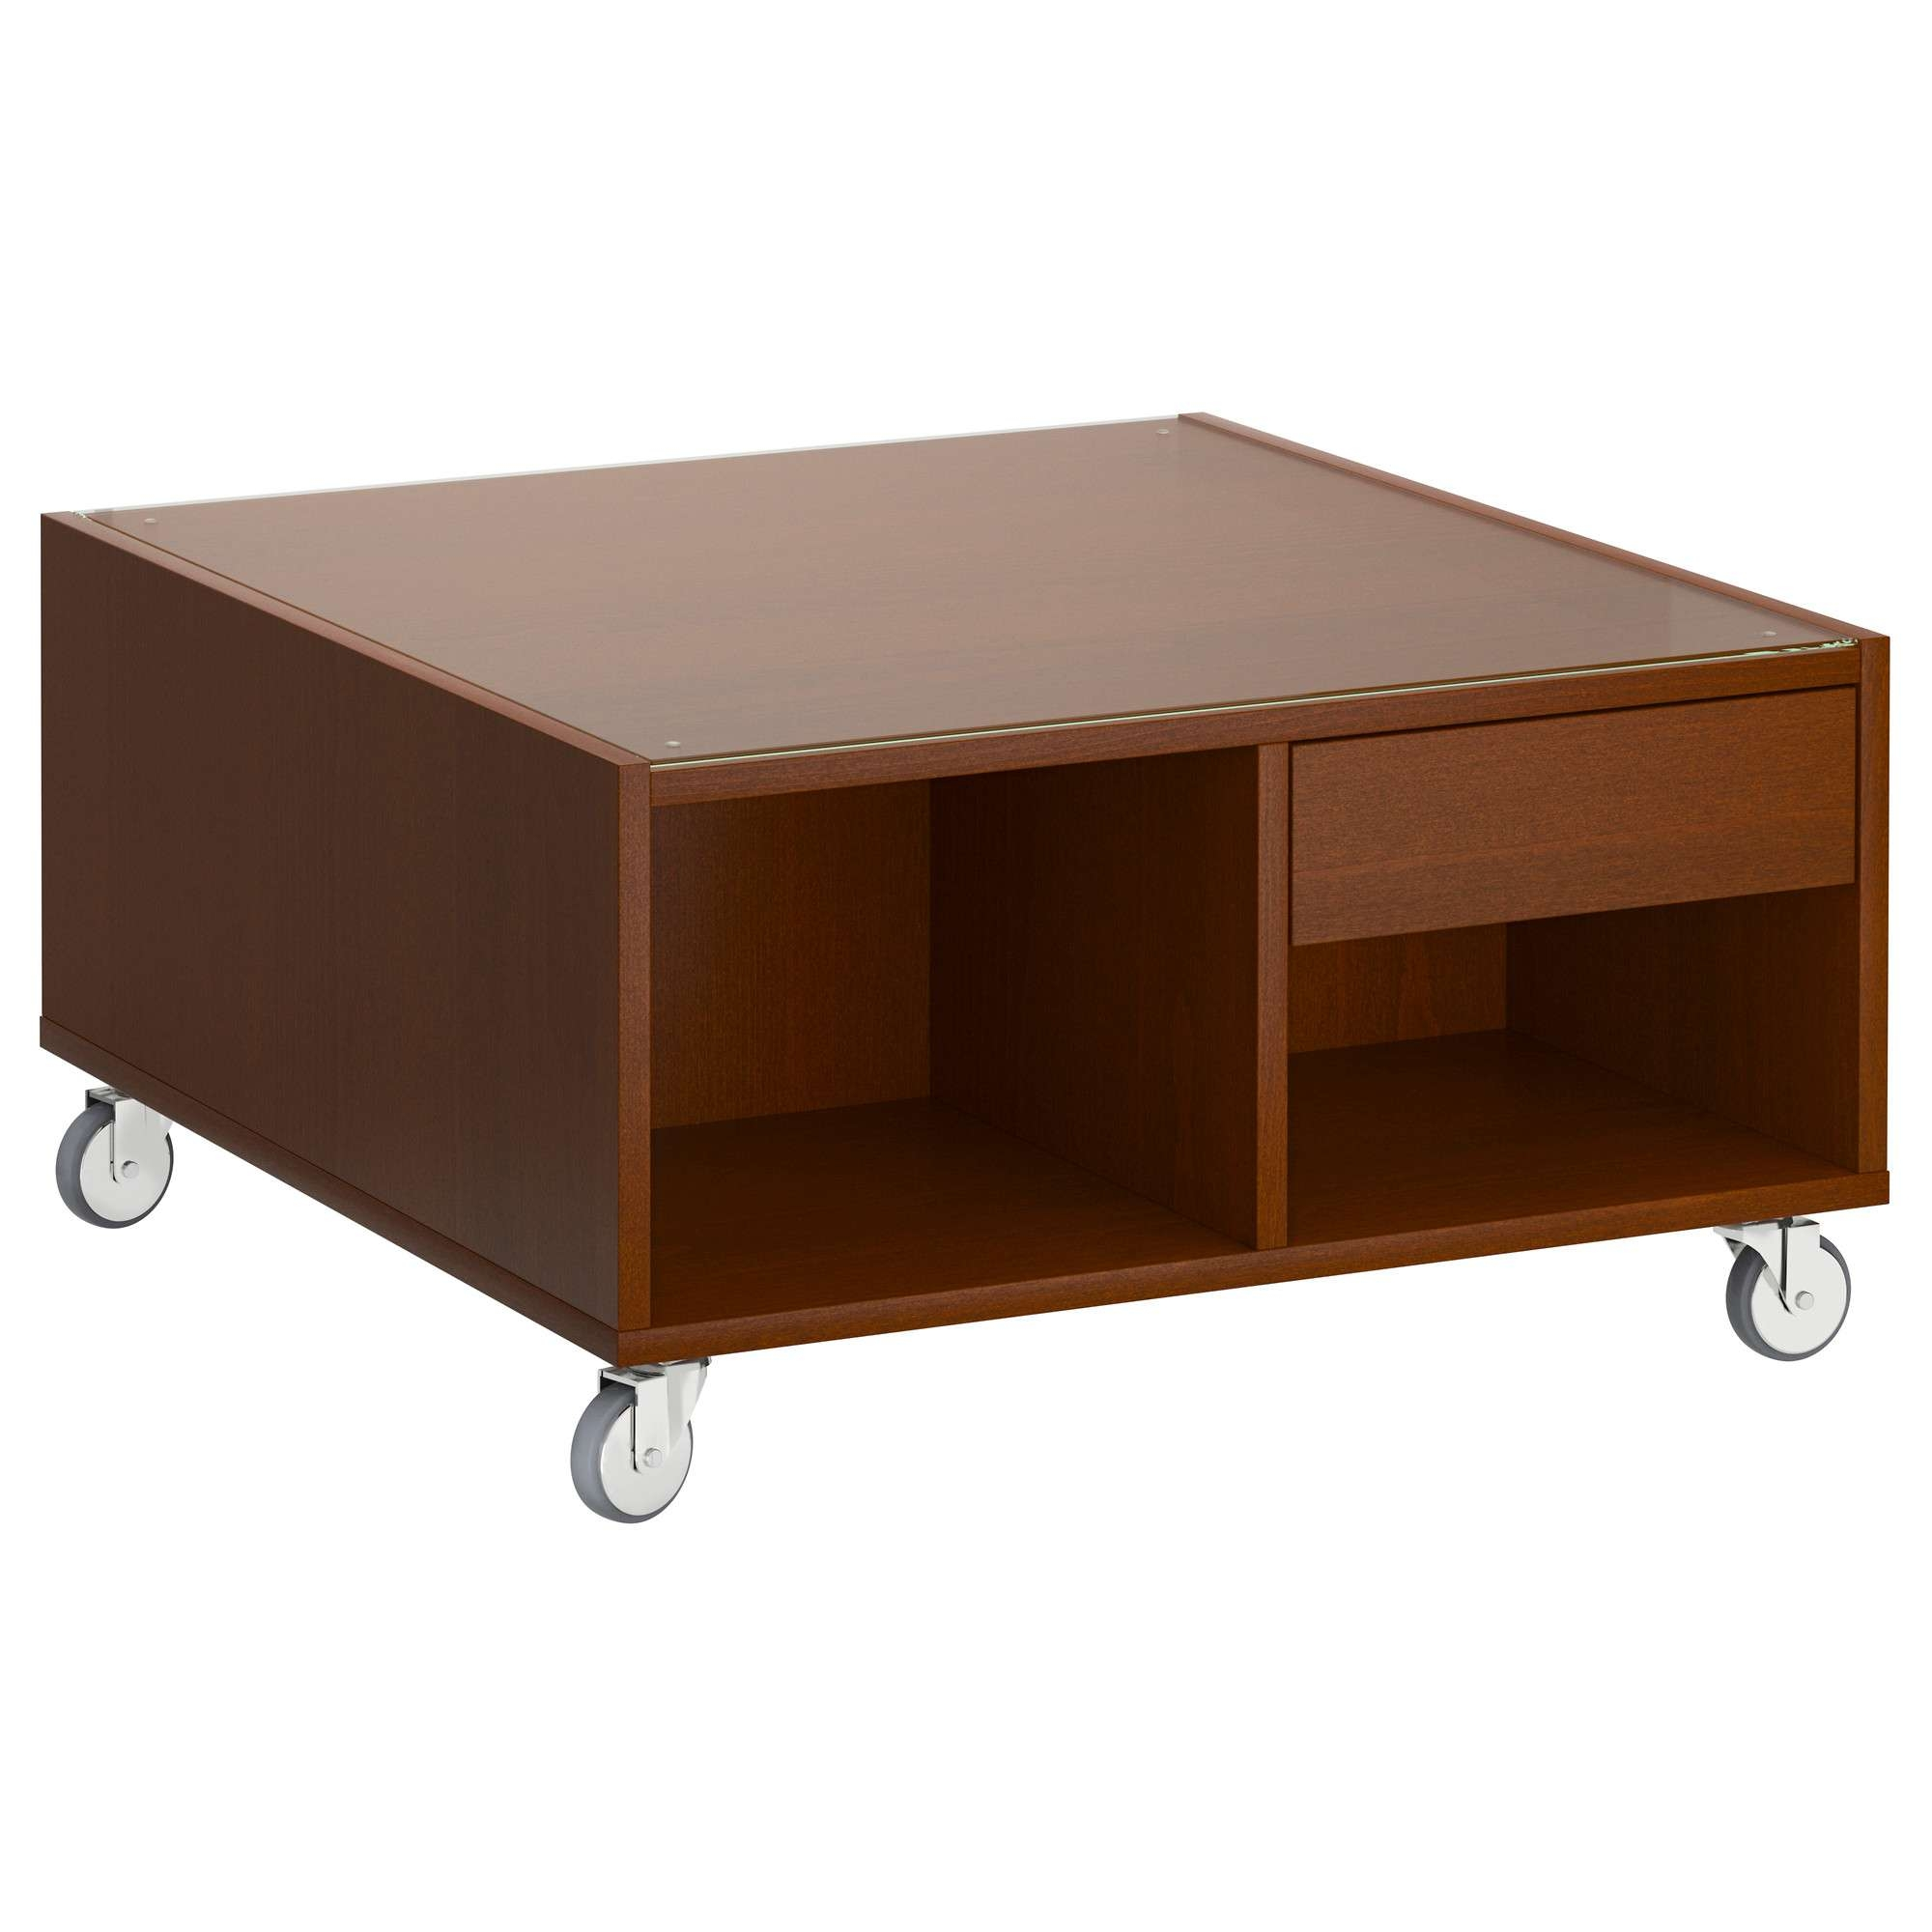 Coffee Tables : Outstanding Square Coffee Tables Wood Images Throughout Widely Used Cheap Coffee Tables With Storage (View 2 of 20)